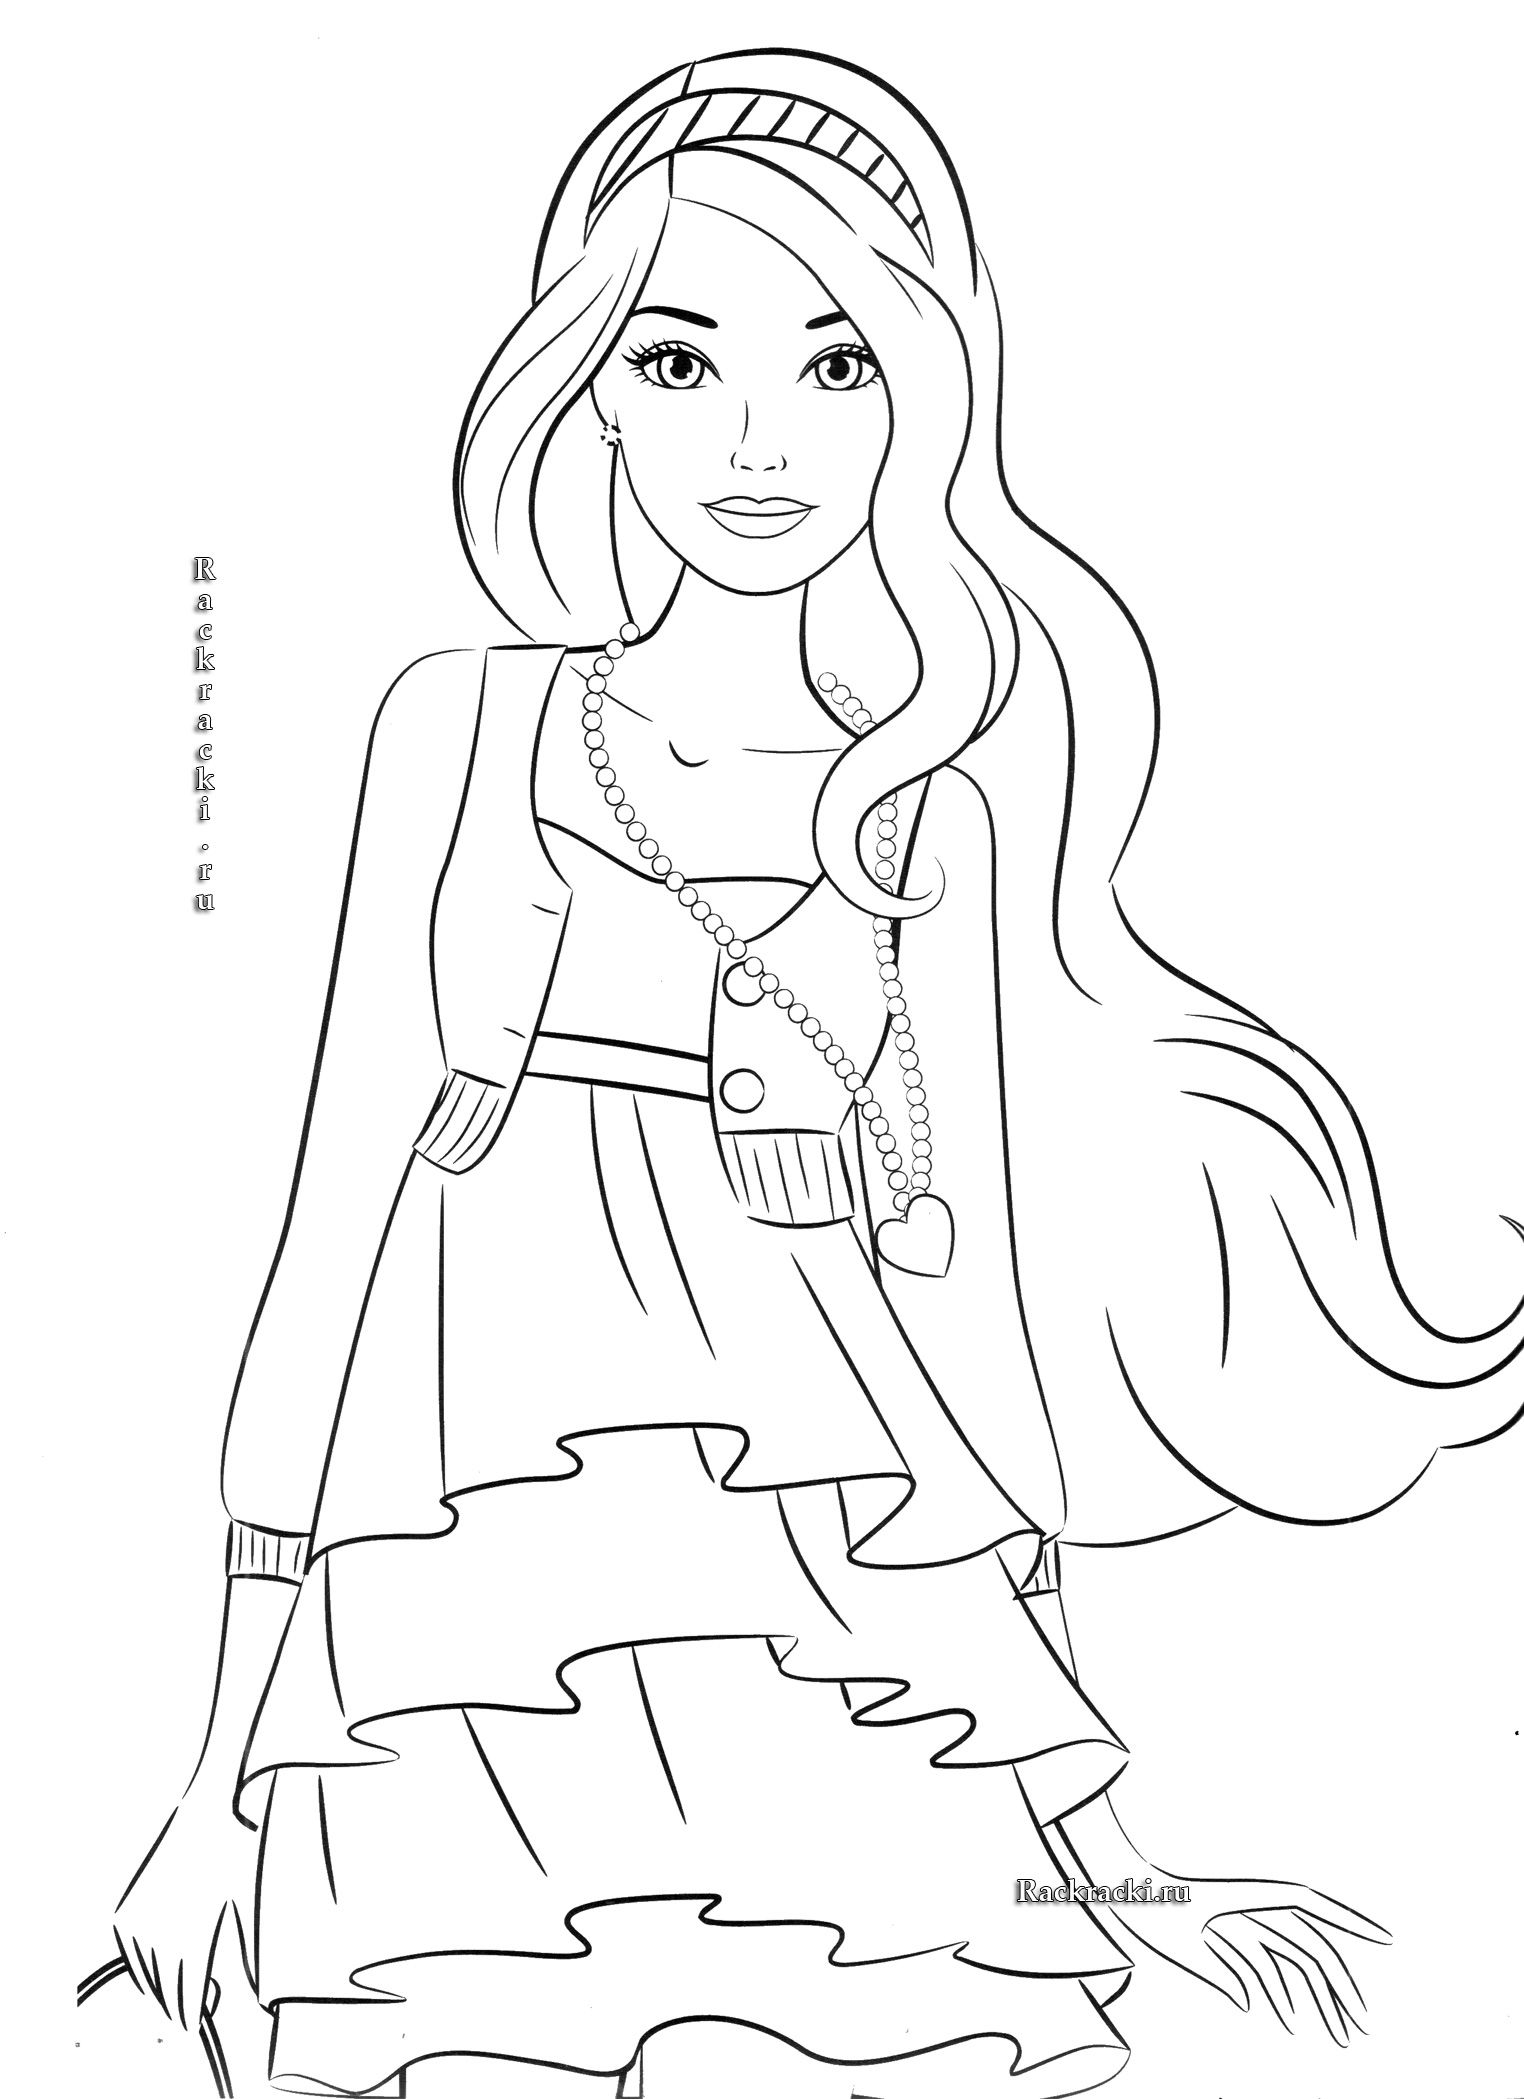 fashion barbie coloring pages barbie coloring pages for girls toddlers adults print pages barbie fashion coloring